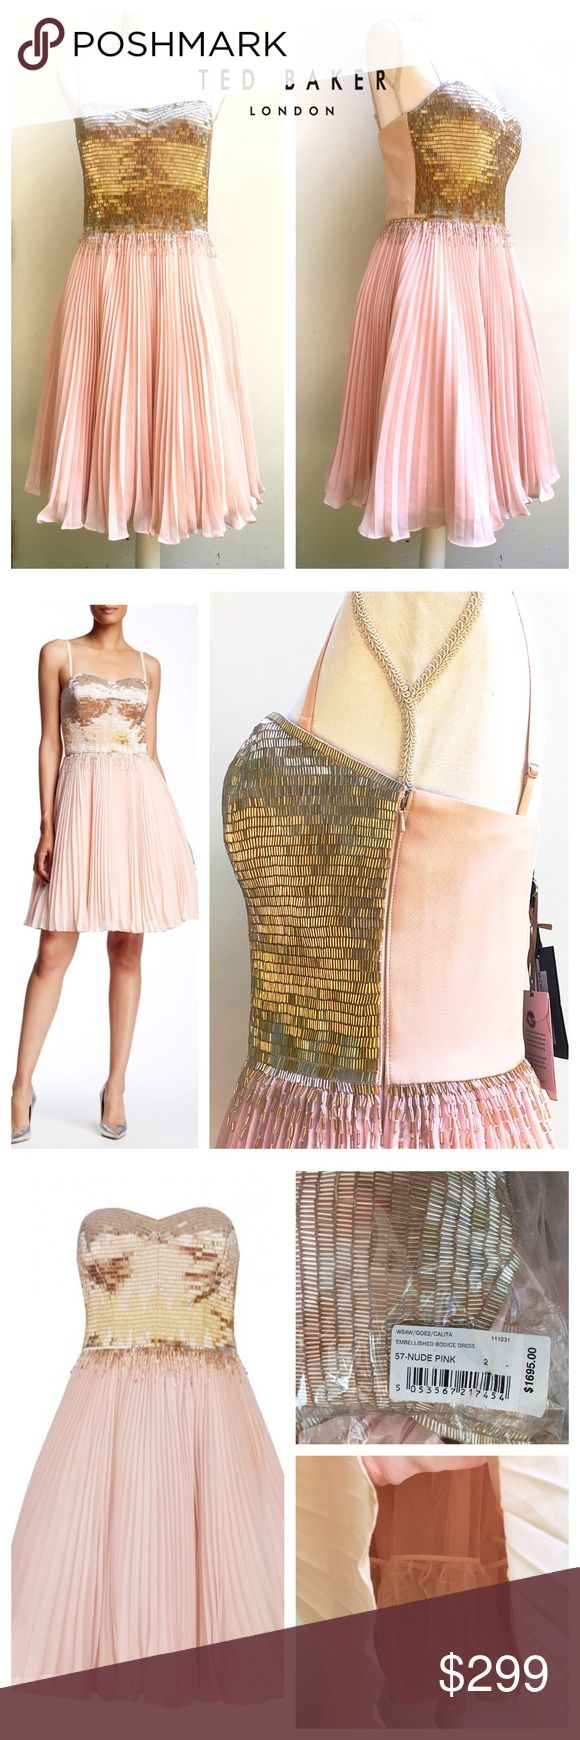 🚨SALE🚨Ted Baker Pink Silk Beaded Dress, 2 NWT Calita Embellished Silk Dress Nude Pink sz 2= US 6. 🎀sizes 4,6,8 available. Strapless style features glistening beading across the bodice, with a degrade effect as it falls into the soft, billowing skirt. A true style investment Ted Baker's TUX collection Women's embellished evening dress Fully boned structured bodice Pleated chiffon skirt Hand embellished with glass bugle beads  side zip fastening Comes with removable straps Fabric Content…